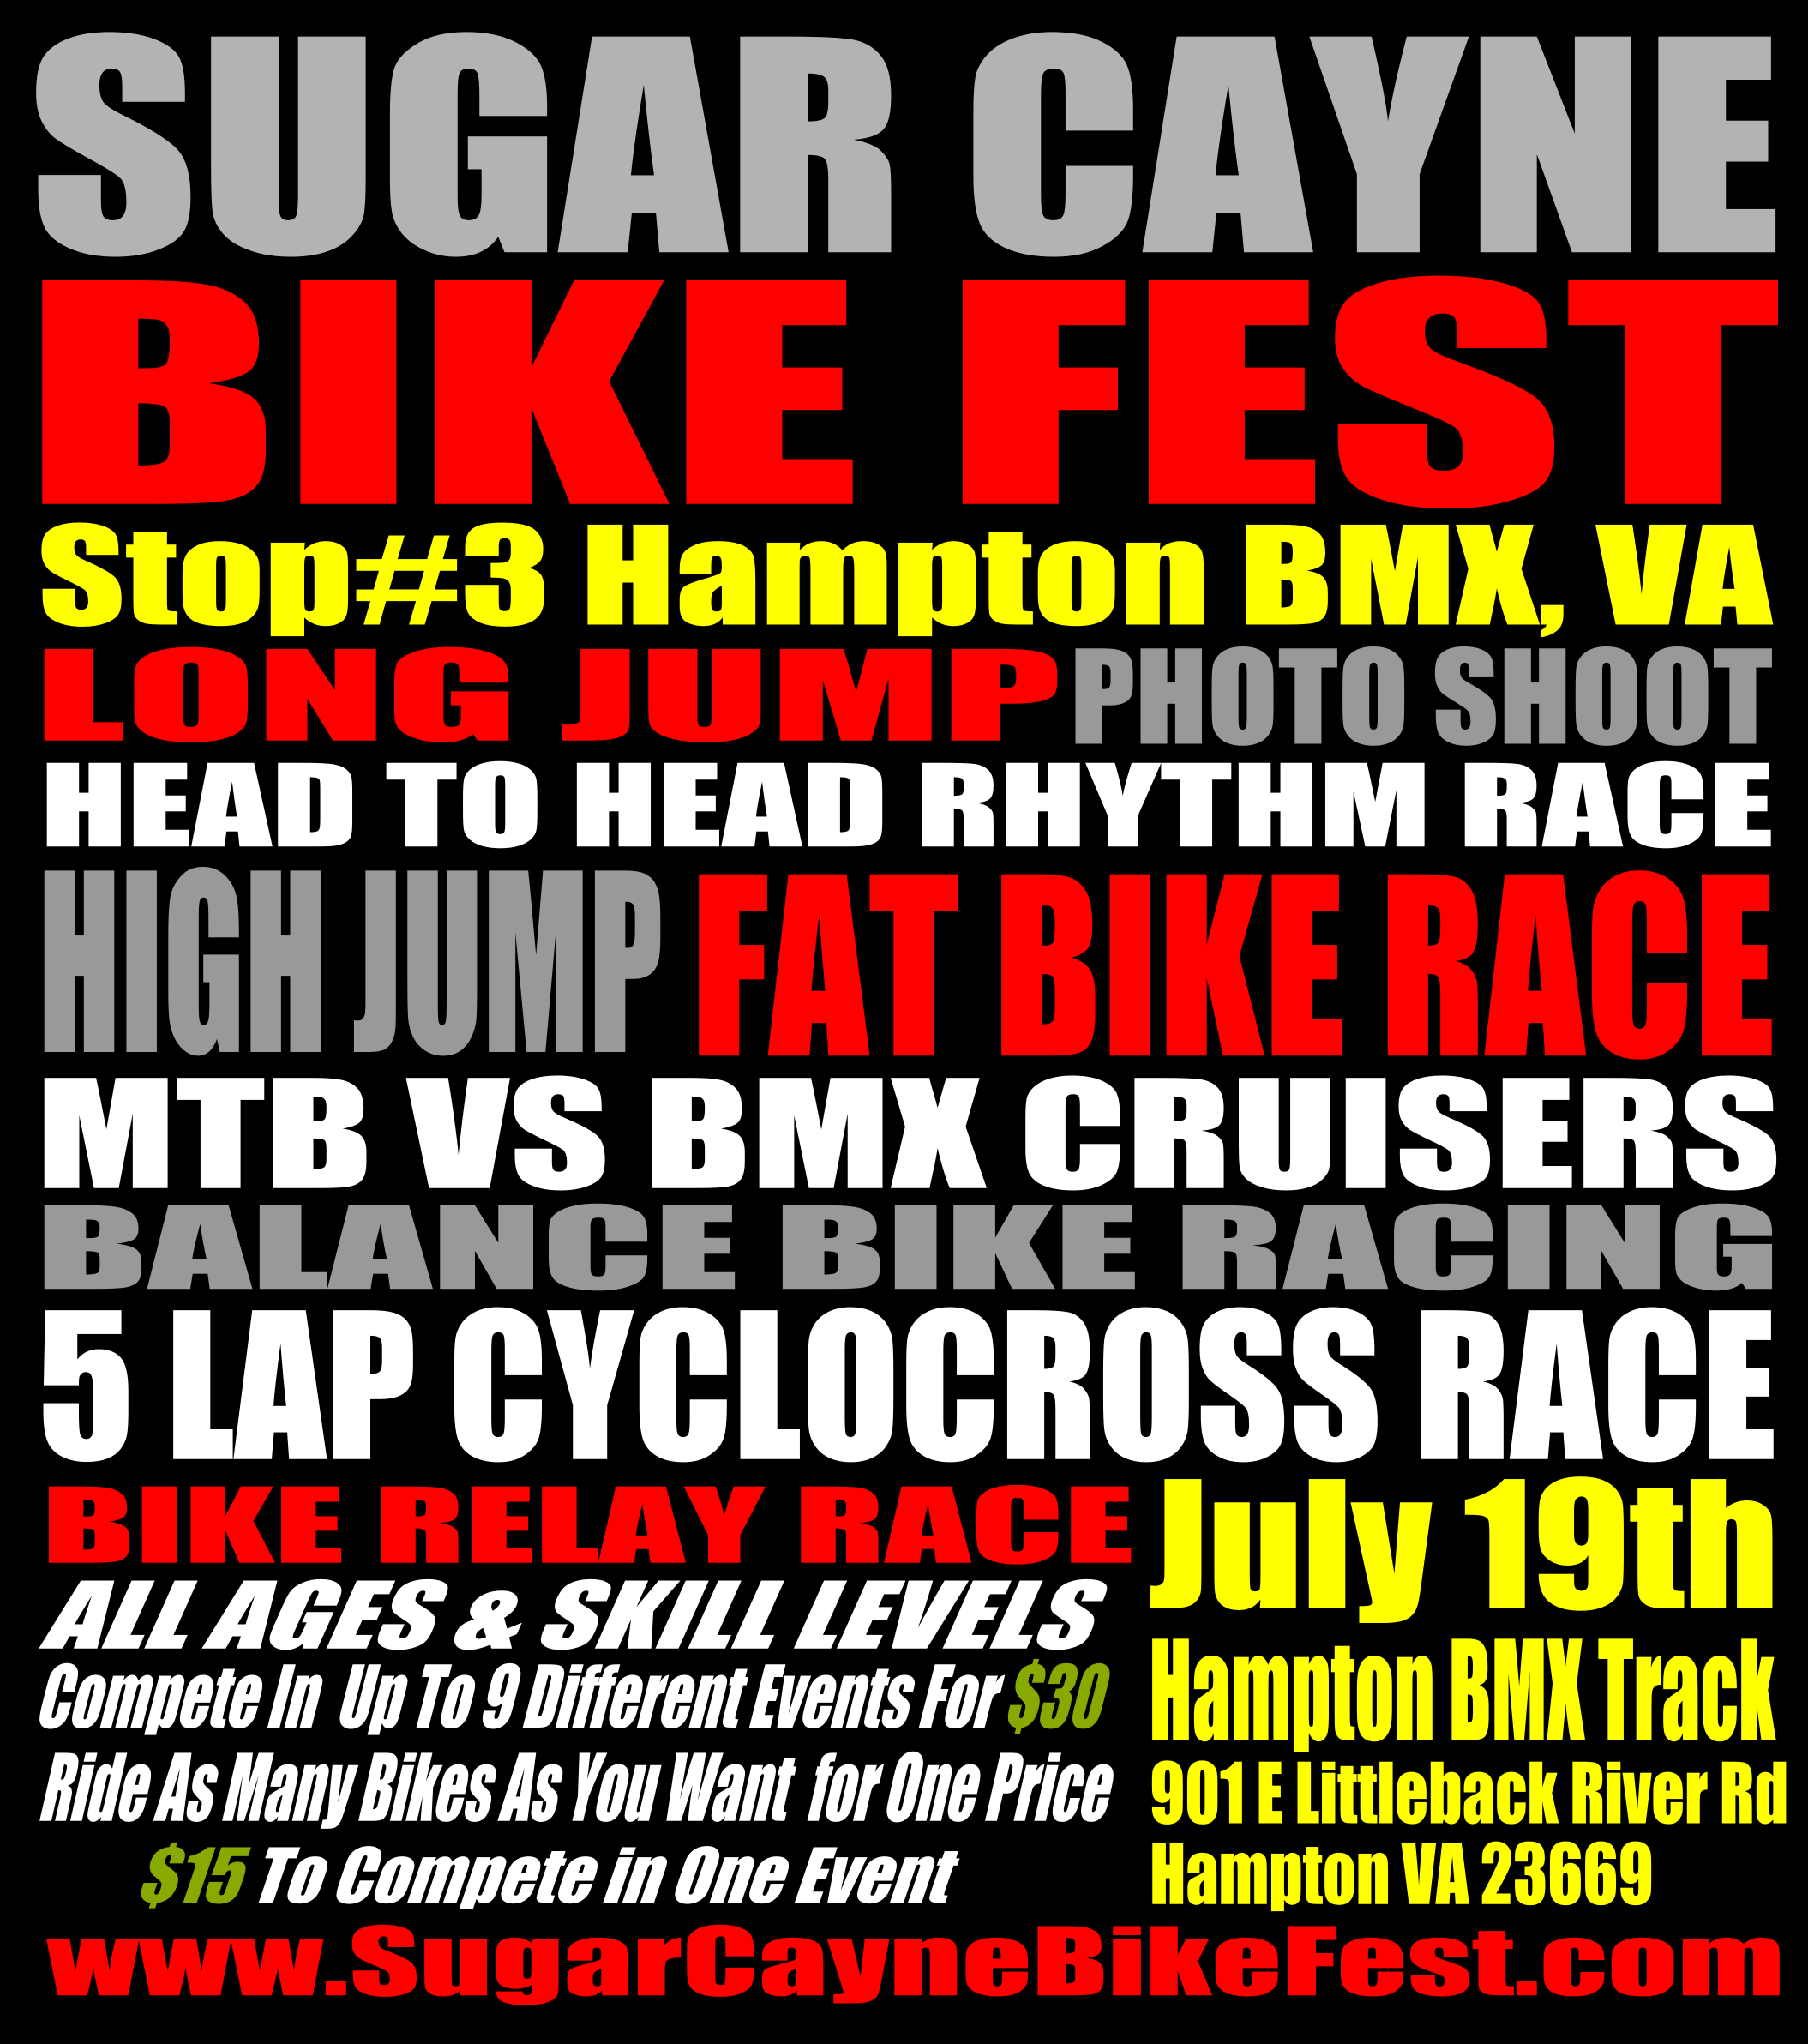 Sugar Cayne Bike Fest Hampton Flier